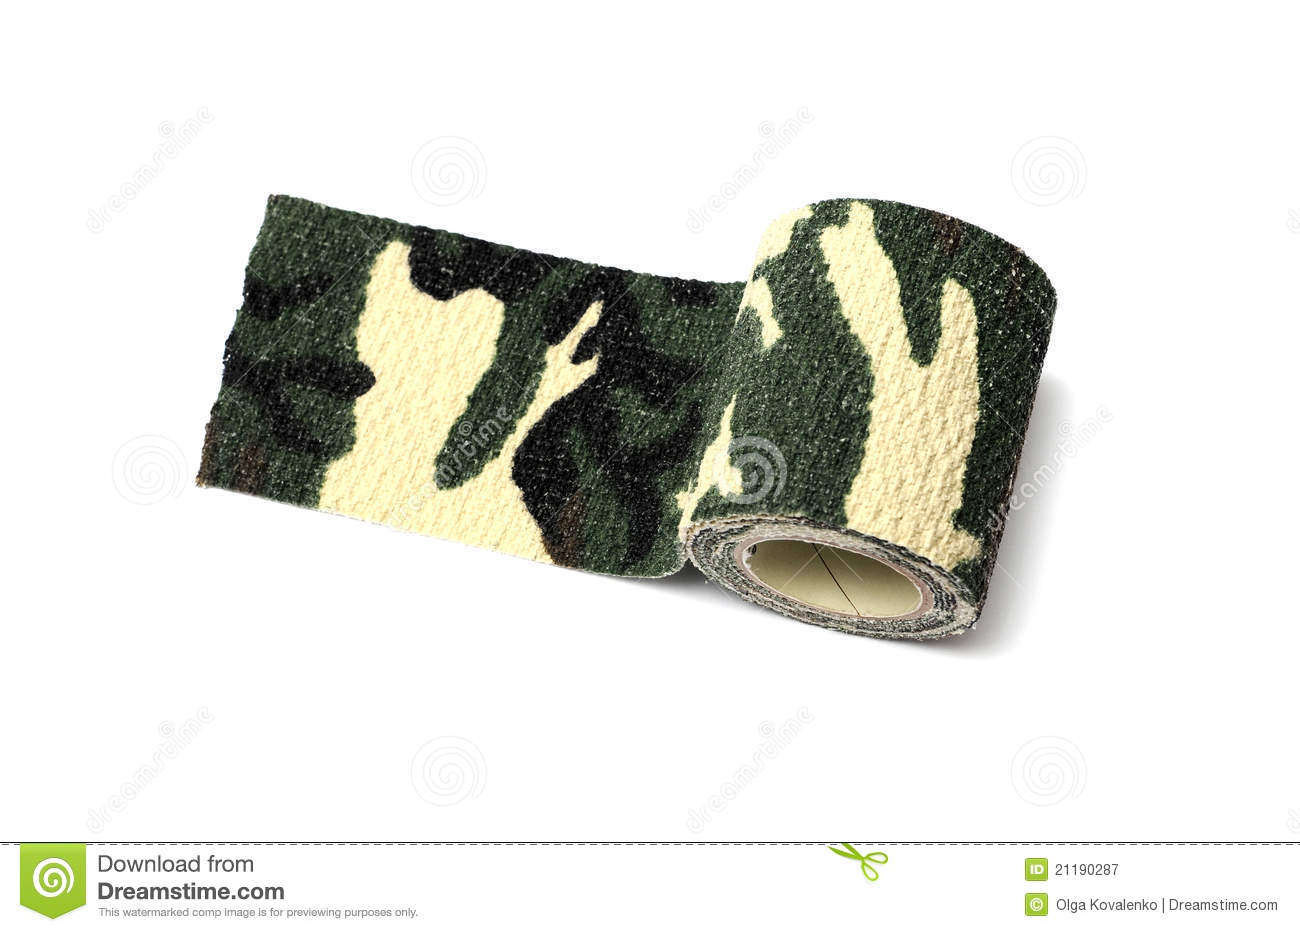 Roll of fabric camouflage tape